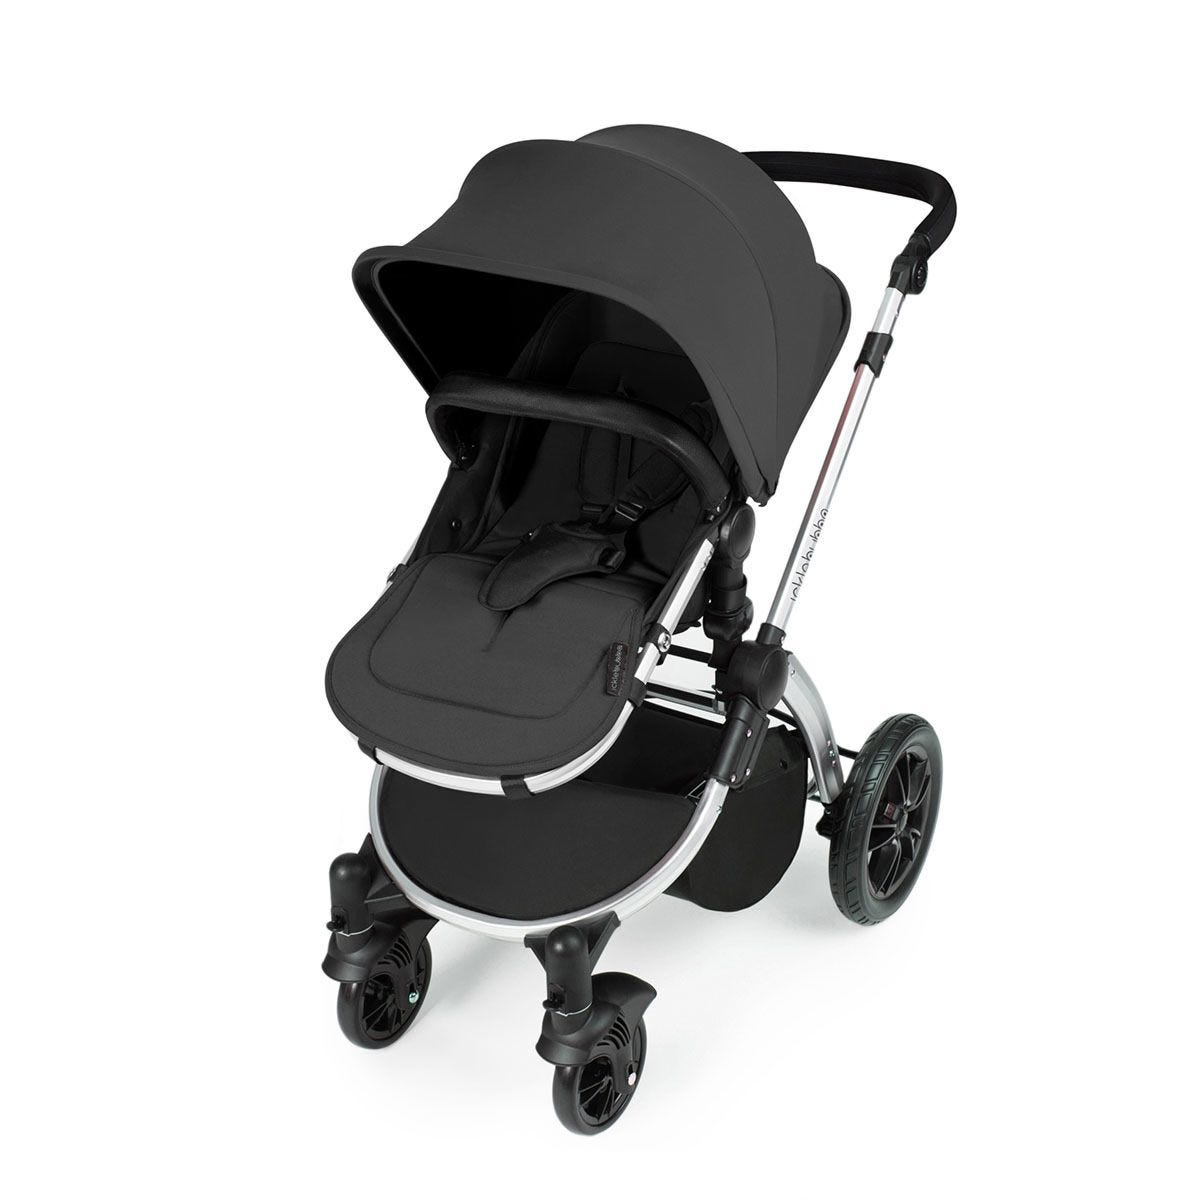 Ickle Bubba Stomp V3 i-Size Travel System with Isofix Base -Graphite Grey on Silver with Black Handles